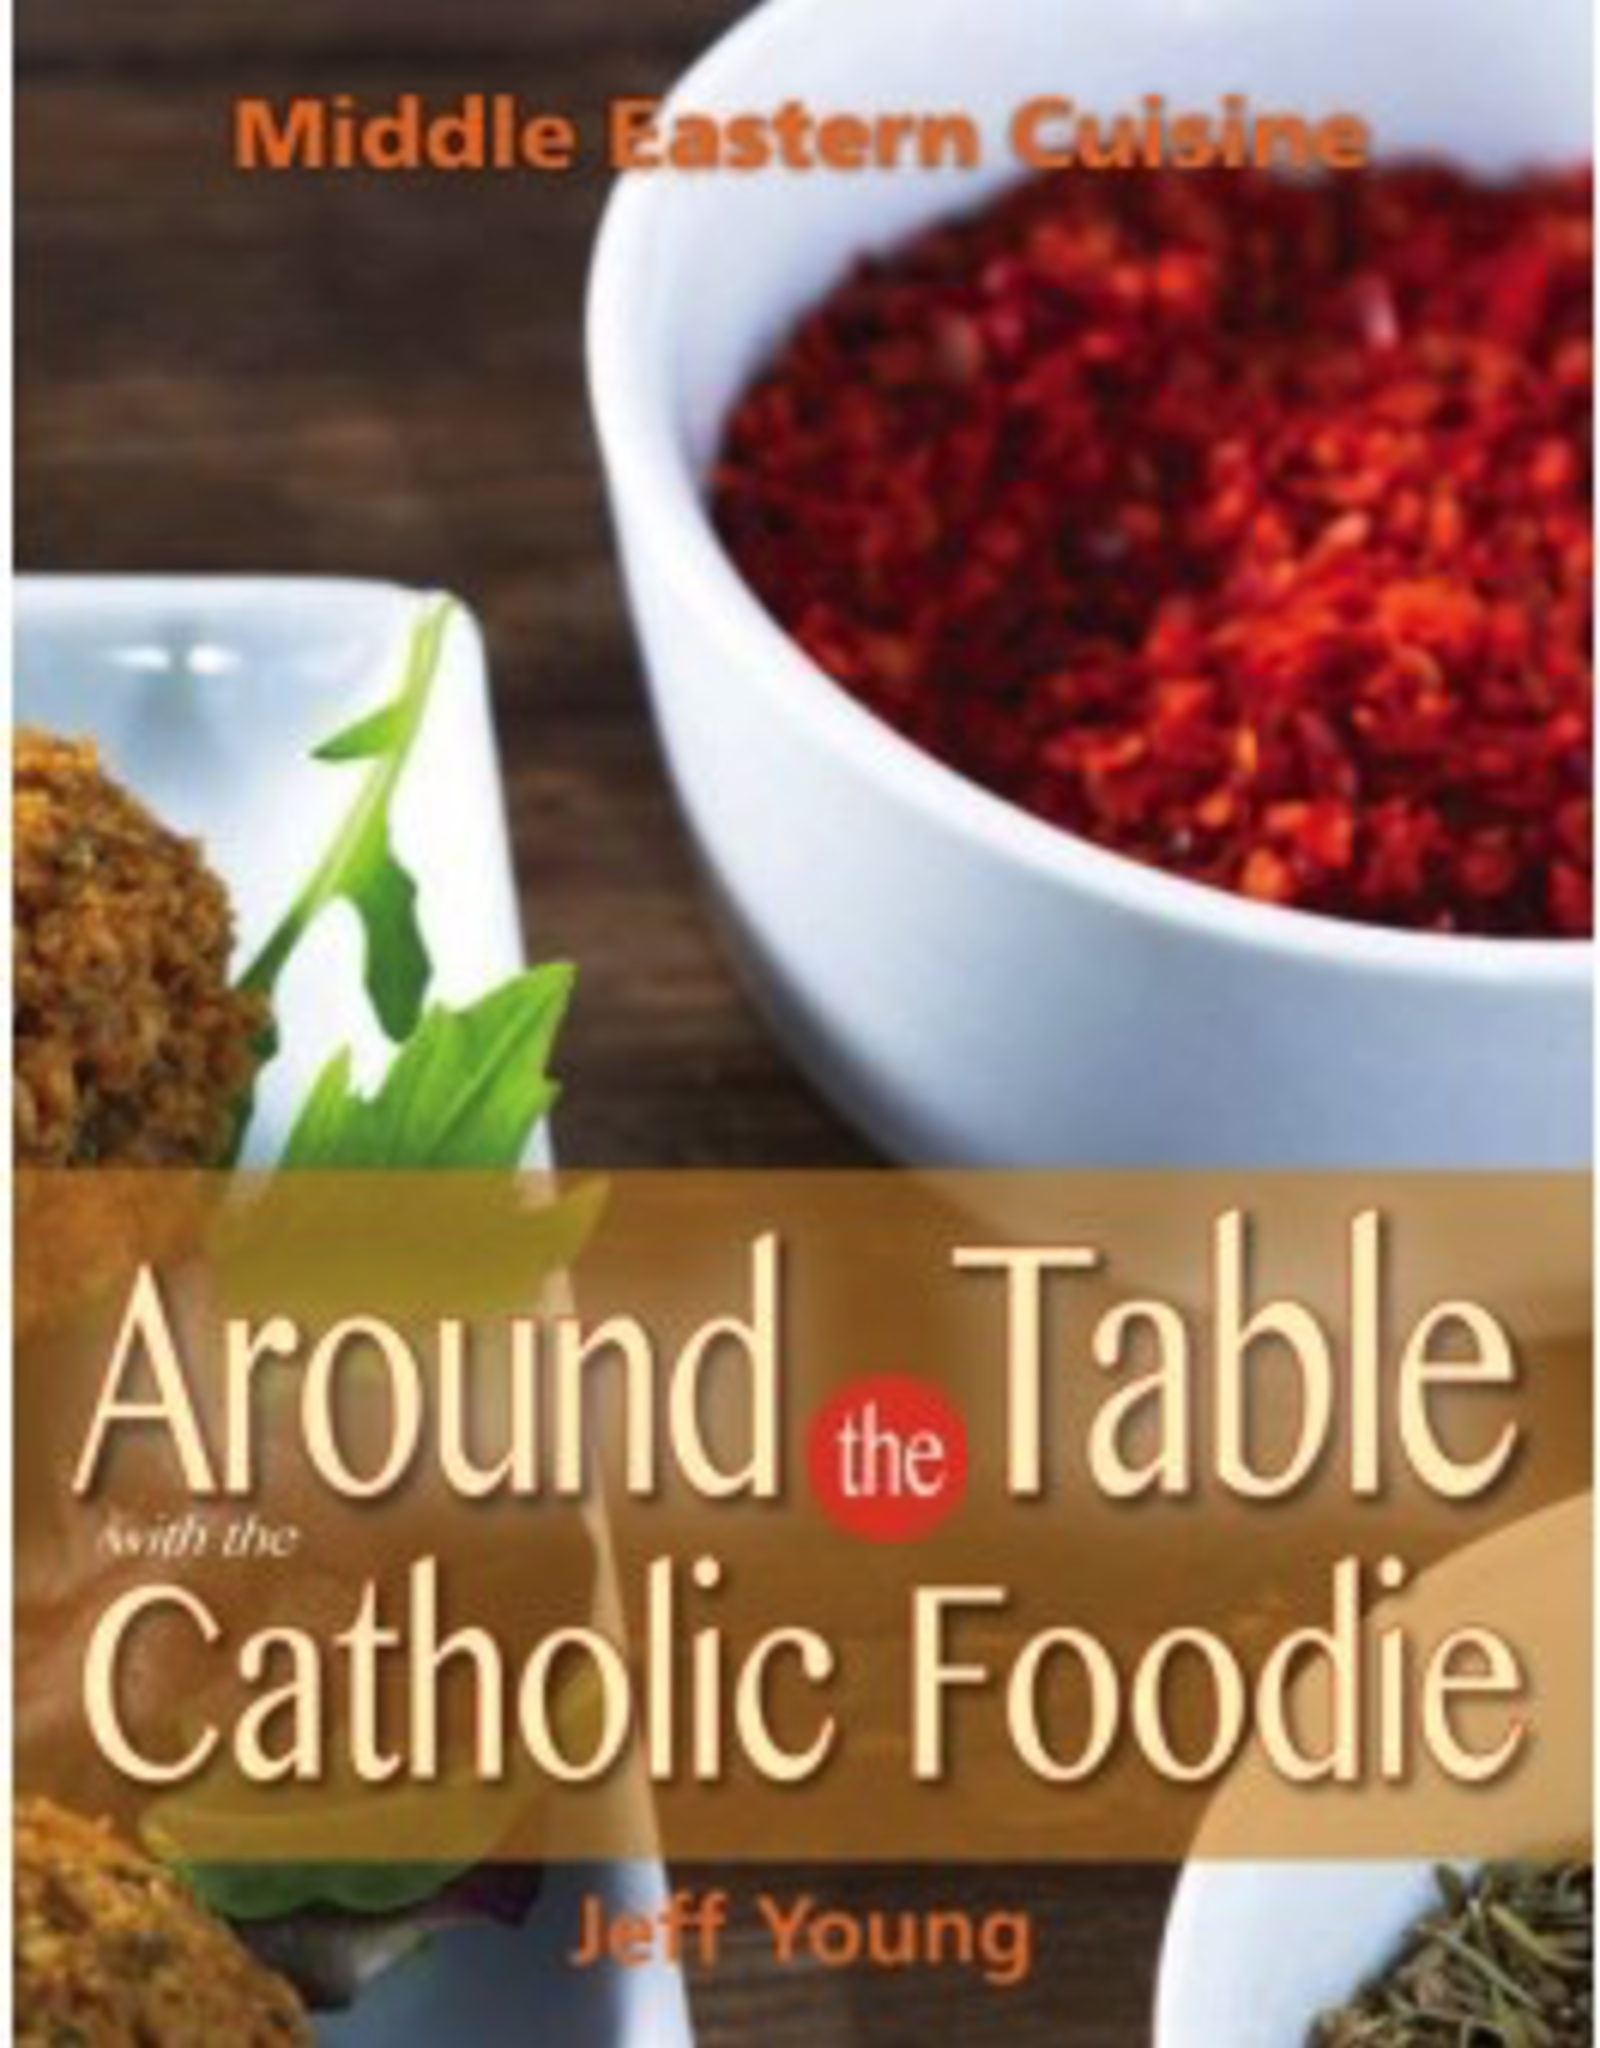 Liguori Around the Table with the Catholic Foodie:  Middle Eastern Cuisine, by Jeff Young (paperback)